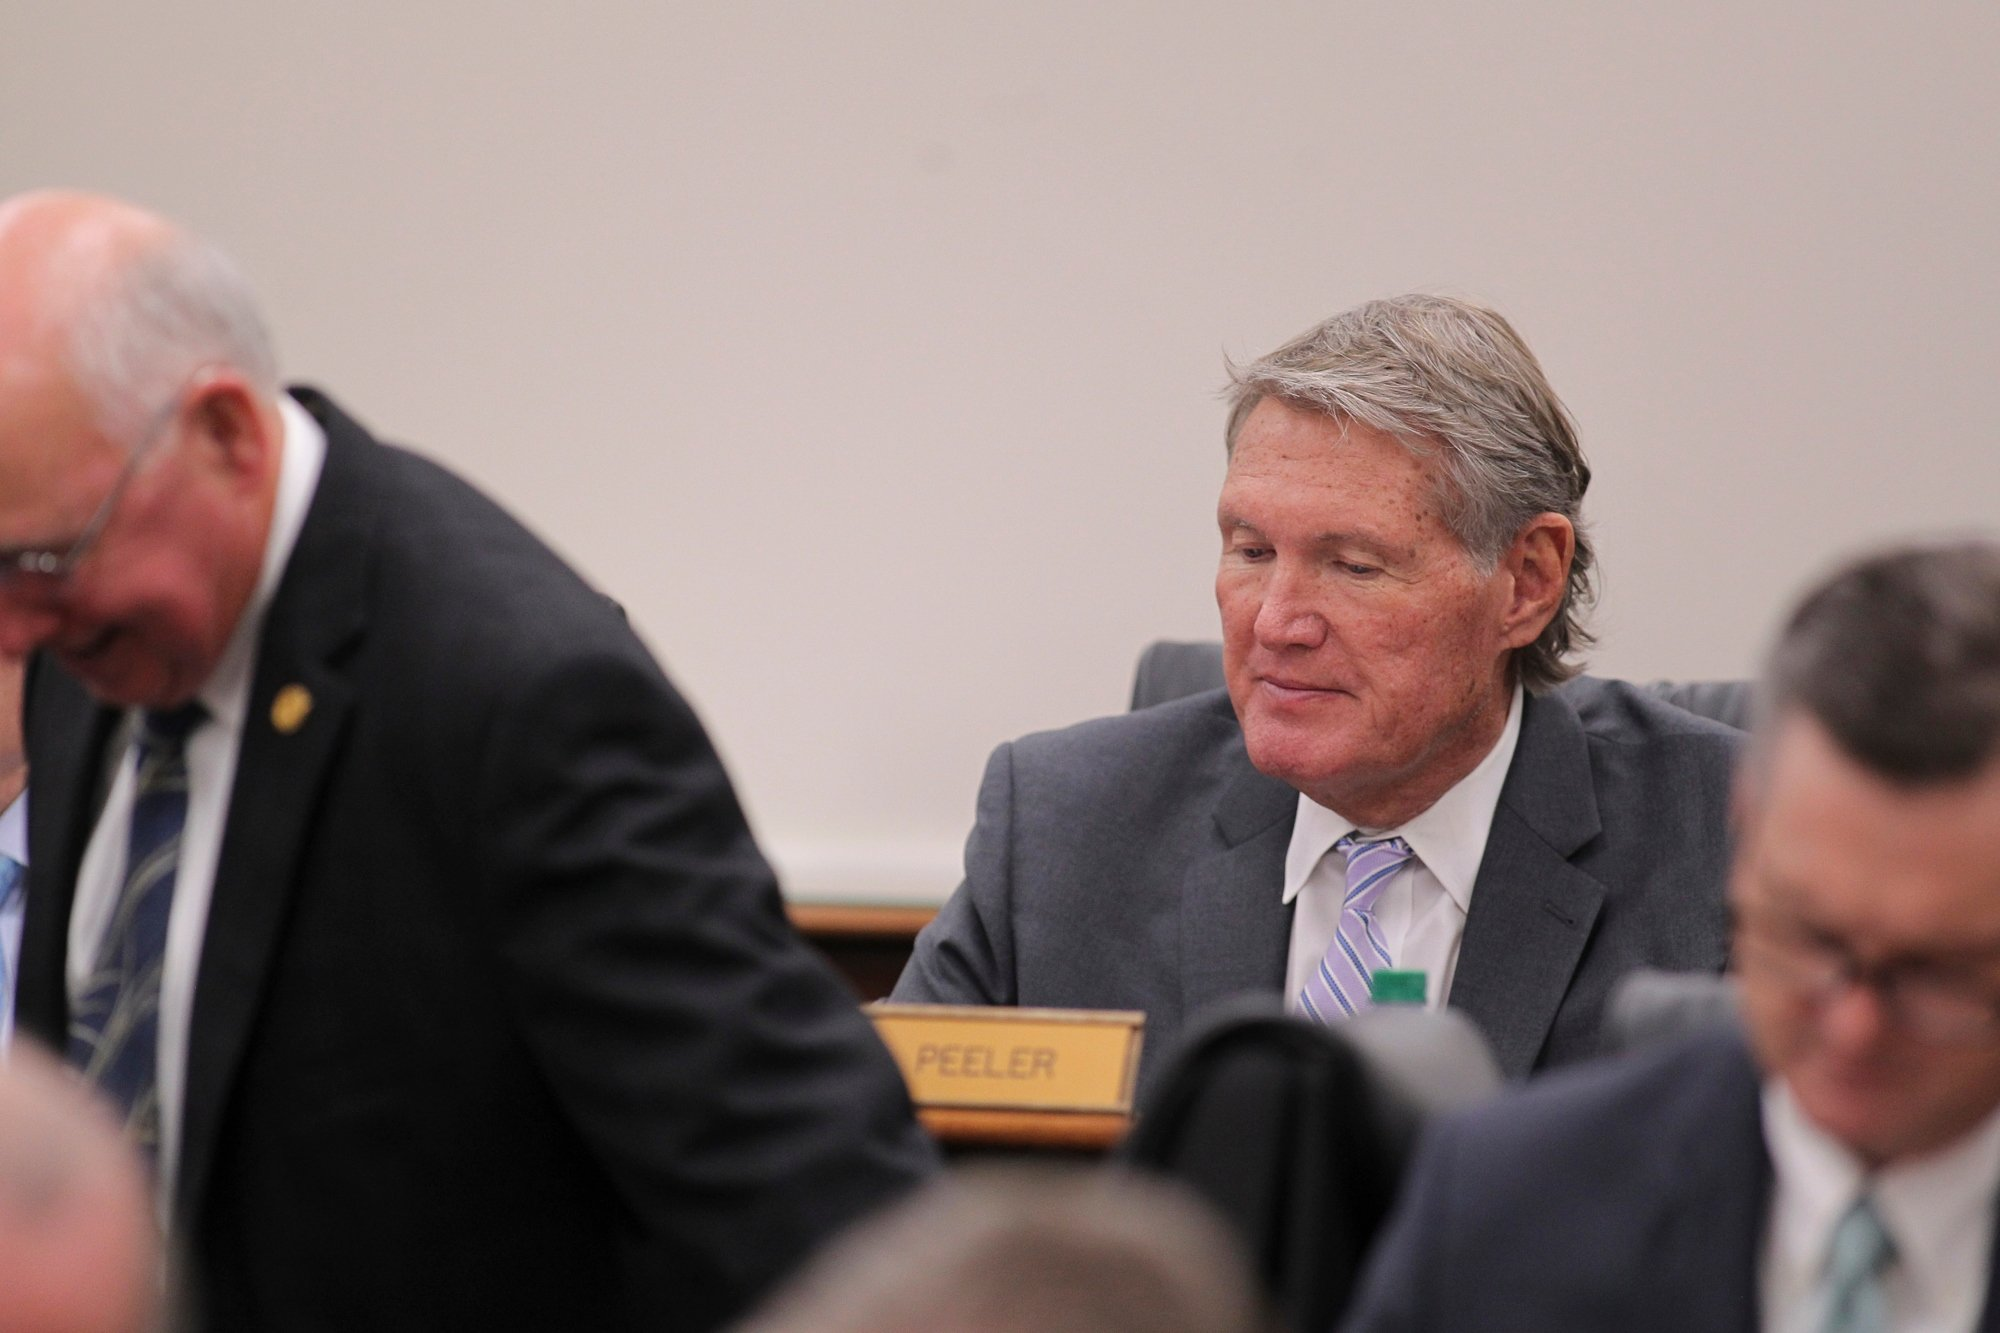 FITSNews – SC Senate Finally Proposes Santee Cooper Sale